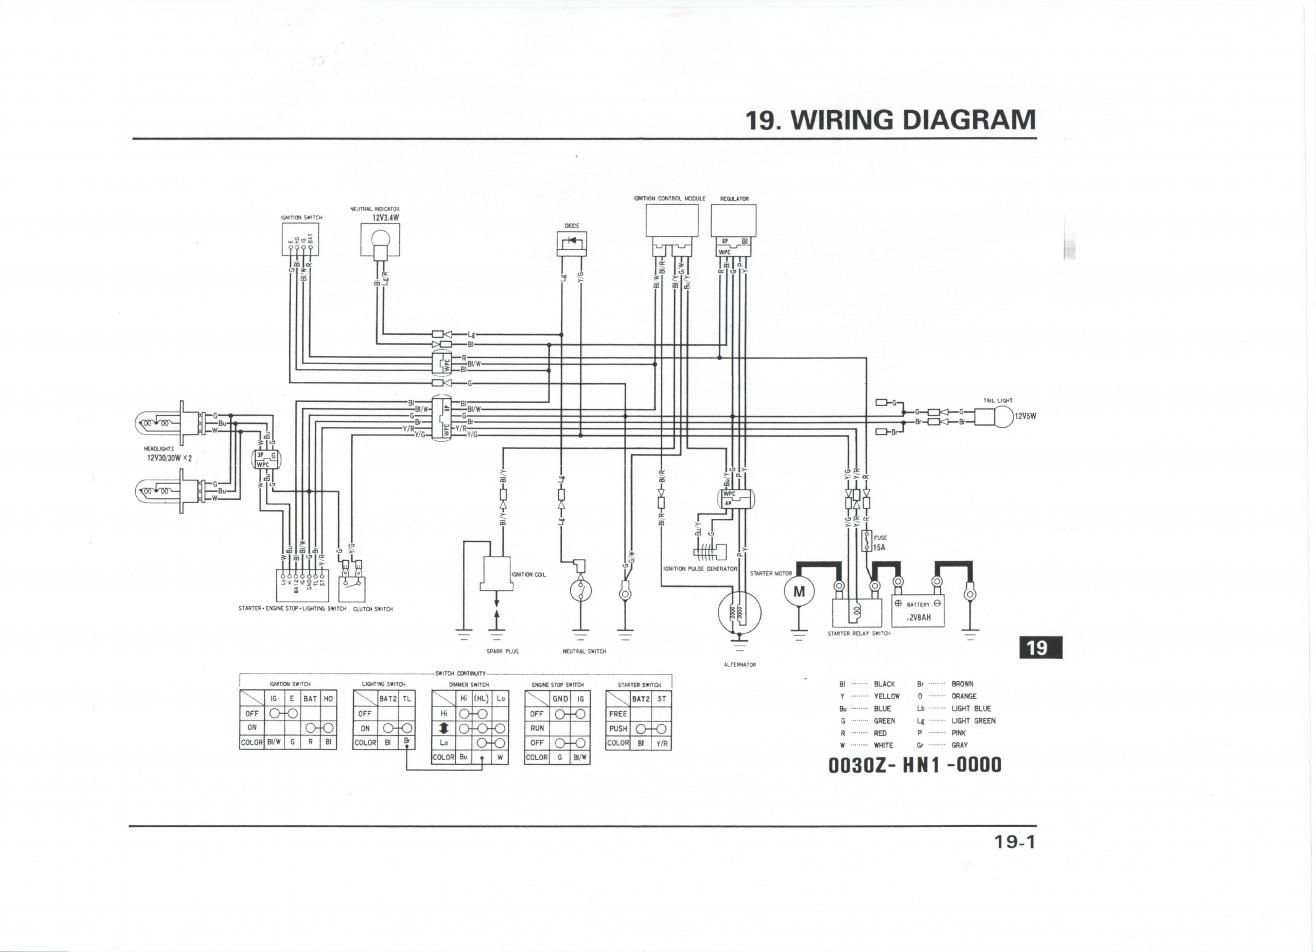 99 honda fourtrax 300 wiring diagram free picture wiring diagramtrx300ex wiring diagram automotive wiring diagrams 1986 [ 1316 x 952 Pixel ]